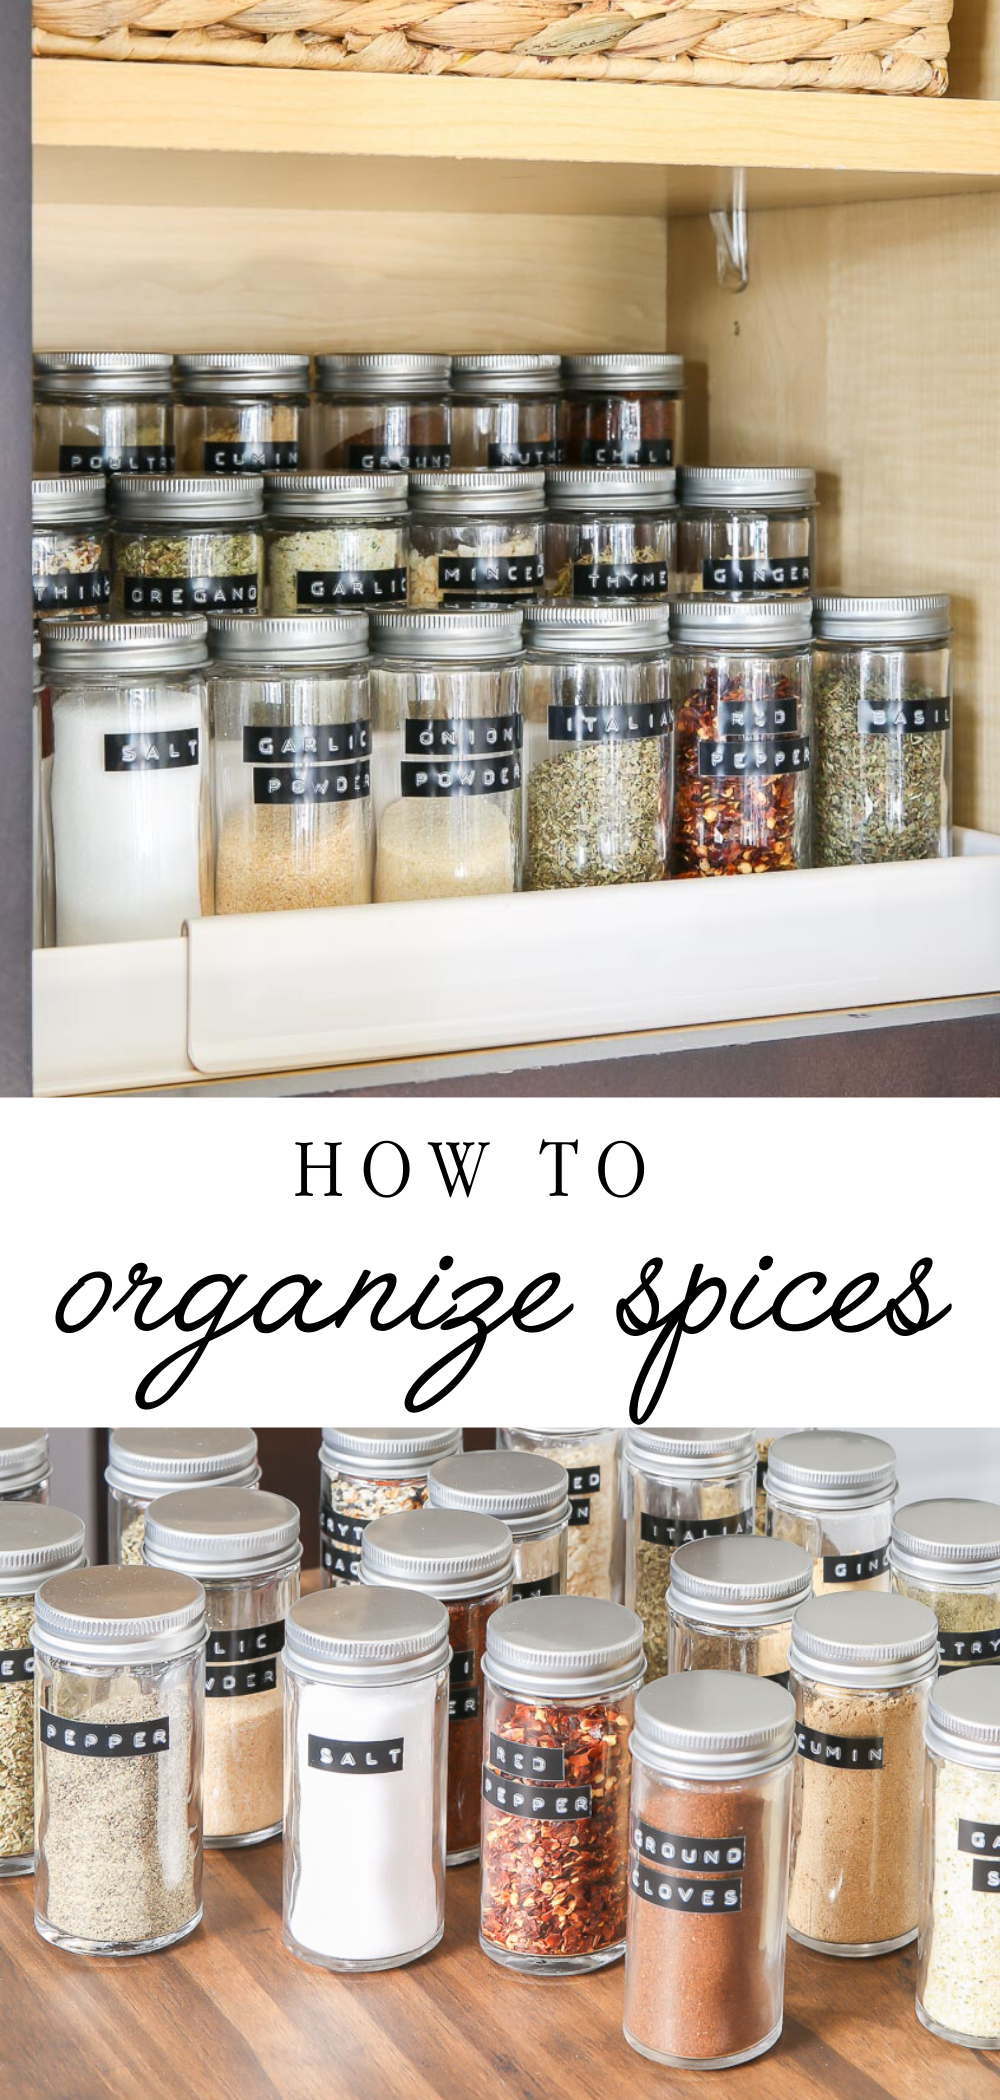 How to orgainze spices